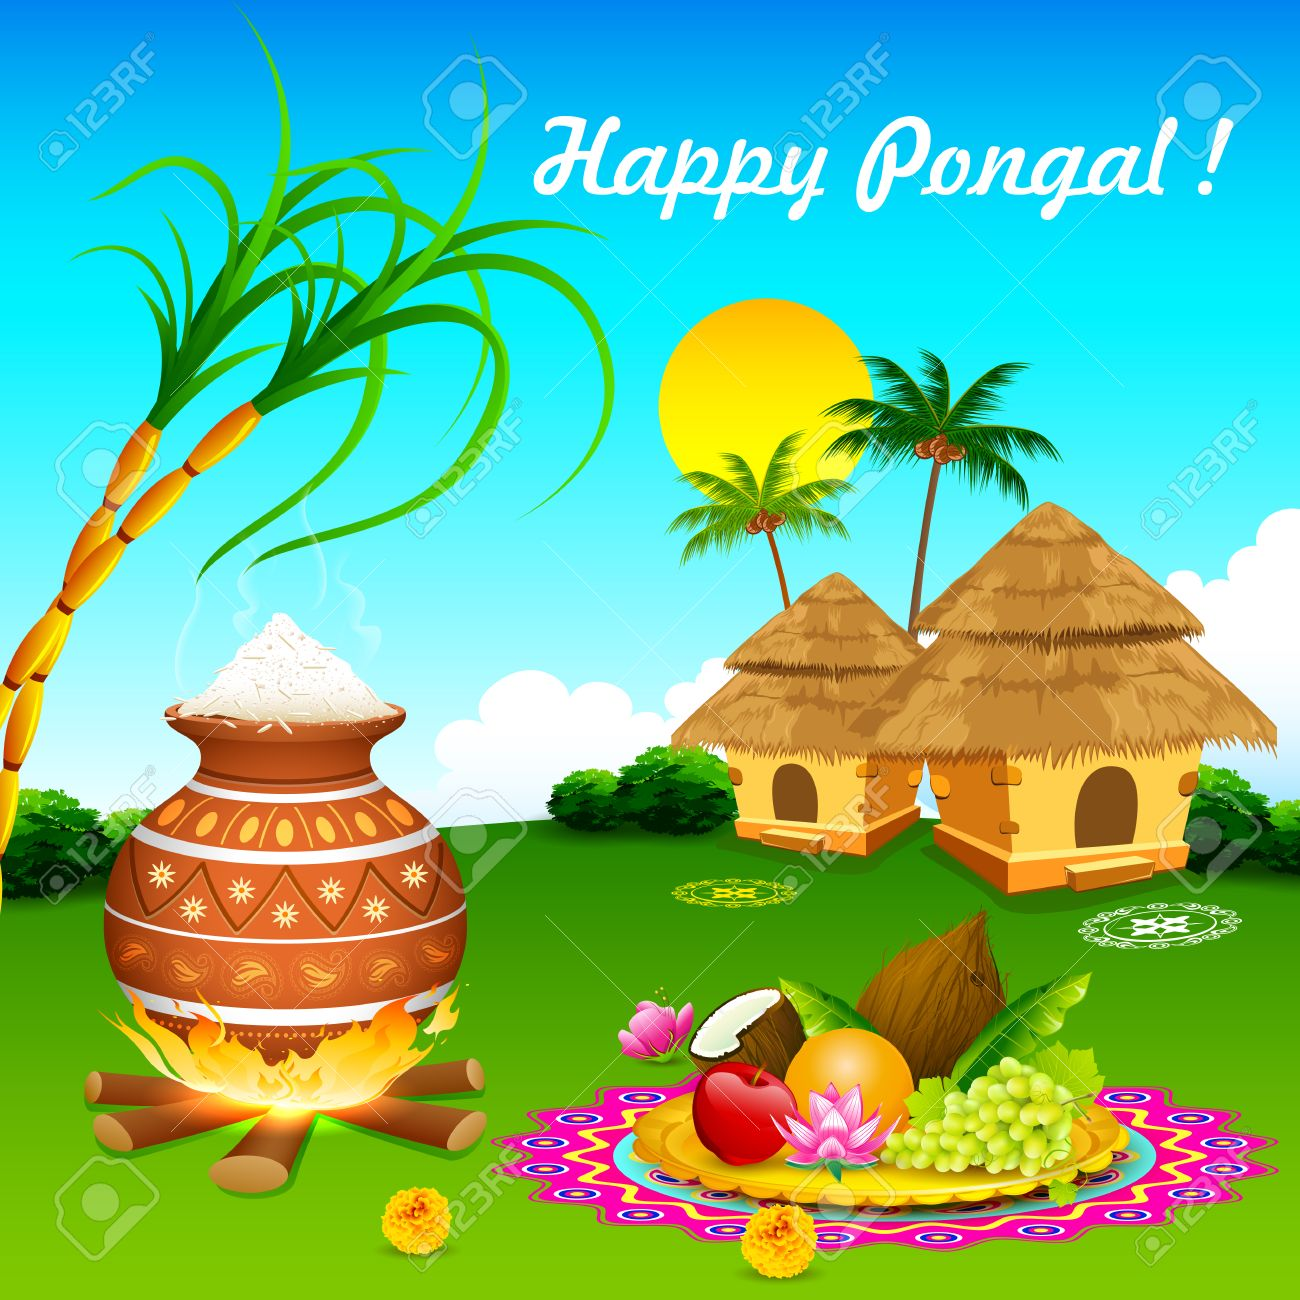 Illustration of happy pongal greeting background royalty free illustration of happy pongal greeting background stock vector 25749793 m4hsunfo